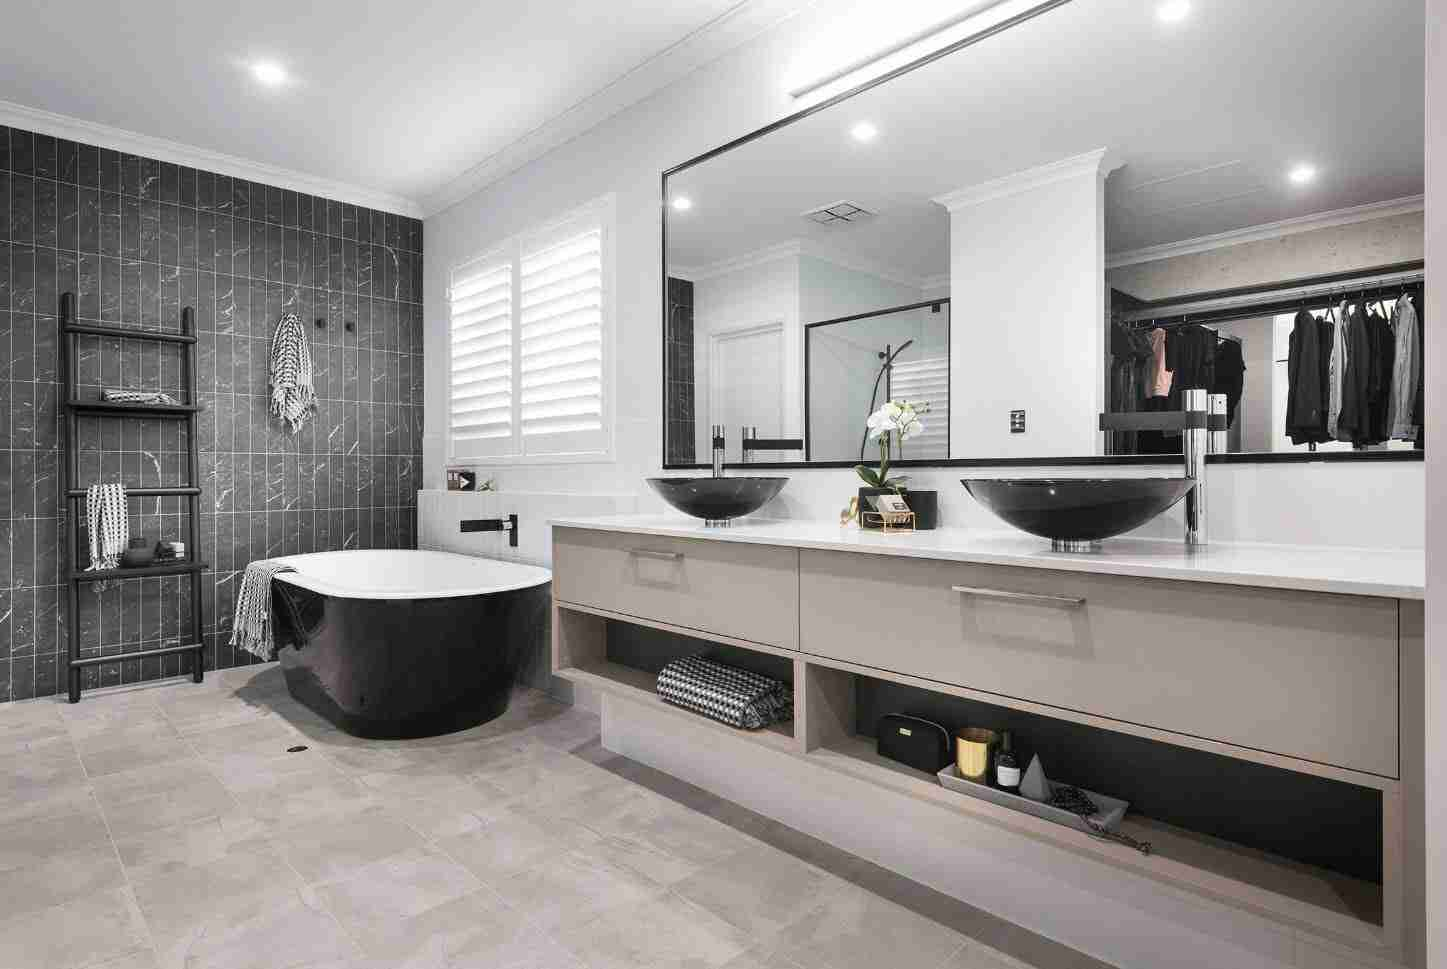 Large mirror in the Scandinavian styled bathroom interior with black bathtub and vanity for two people